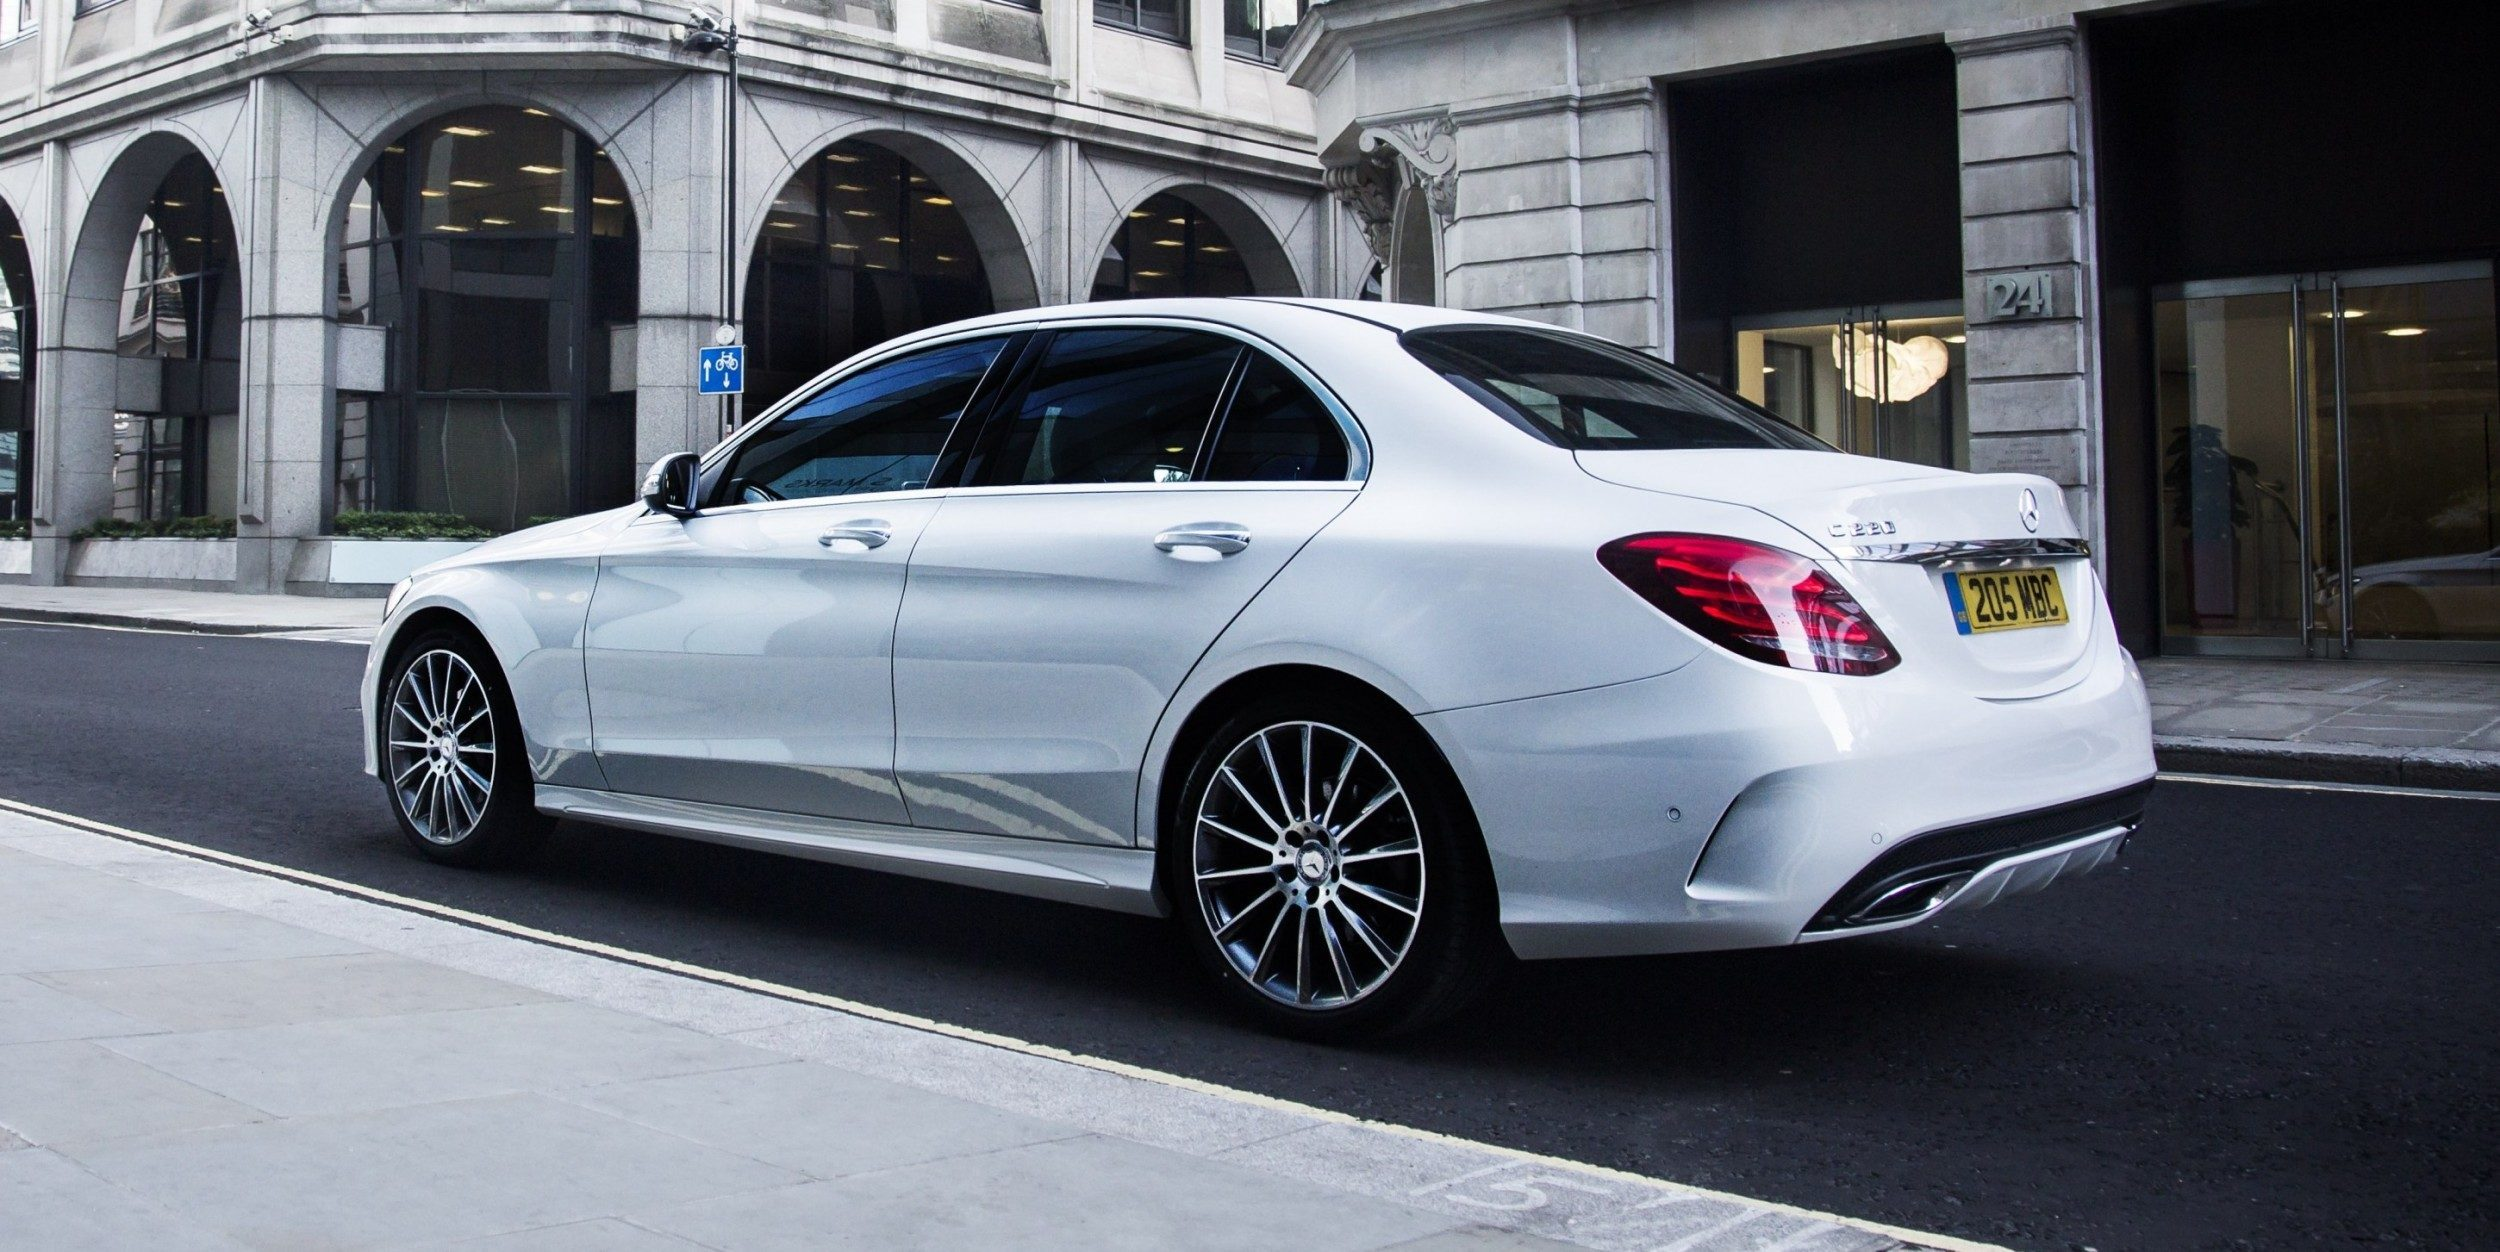 Car dealers london new amp used car dealers in london for Mercedes benz new london ct